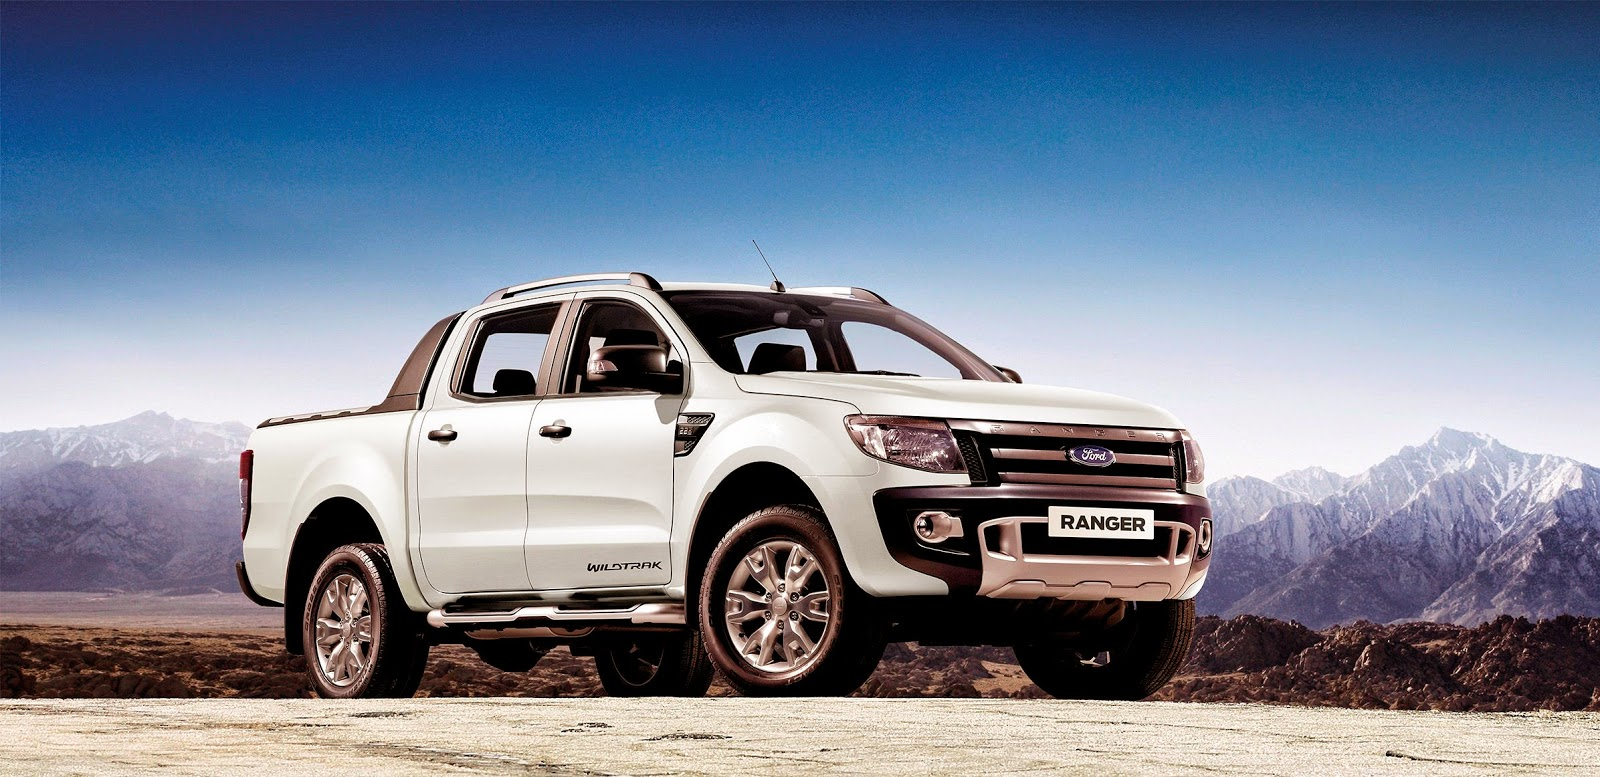 ford welcomes new ranger models by adding 3 new wildtrak. Black Bedroom Furniture Sets. Home Design Ideas